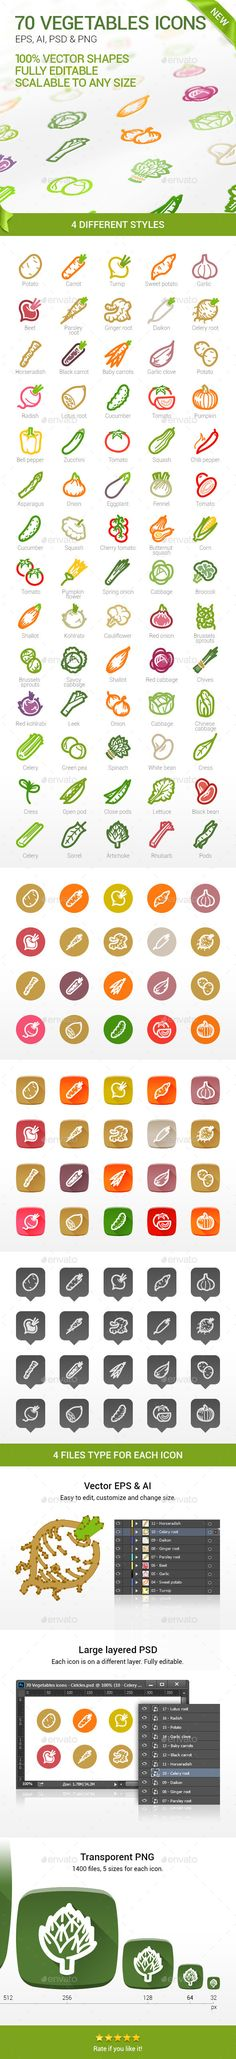 70 Vegetables Icons | Buy and Download: http://graphicriver.net/item/70-vegetables-icons/8995279?WT.ac=category_thumb&WT.z_author=belonogovalexey&ref=ksioks